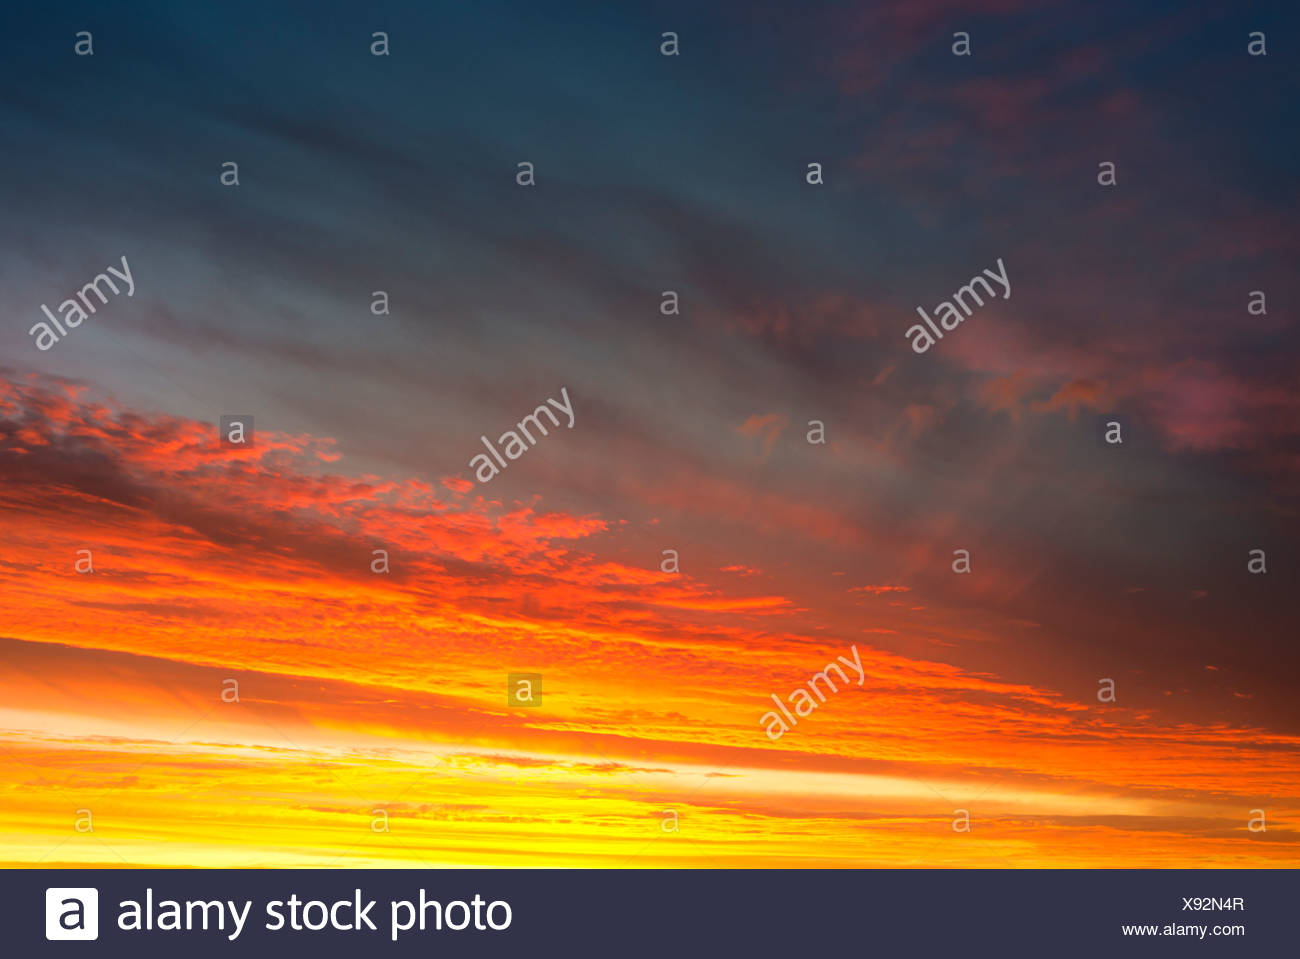 Clouds at dusk above the Atlantic Ocean beach, Finistère, Brittany, France, Europe - Stock Image